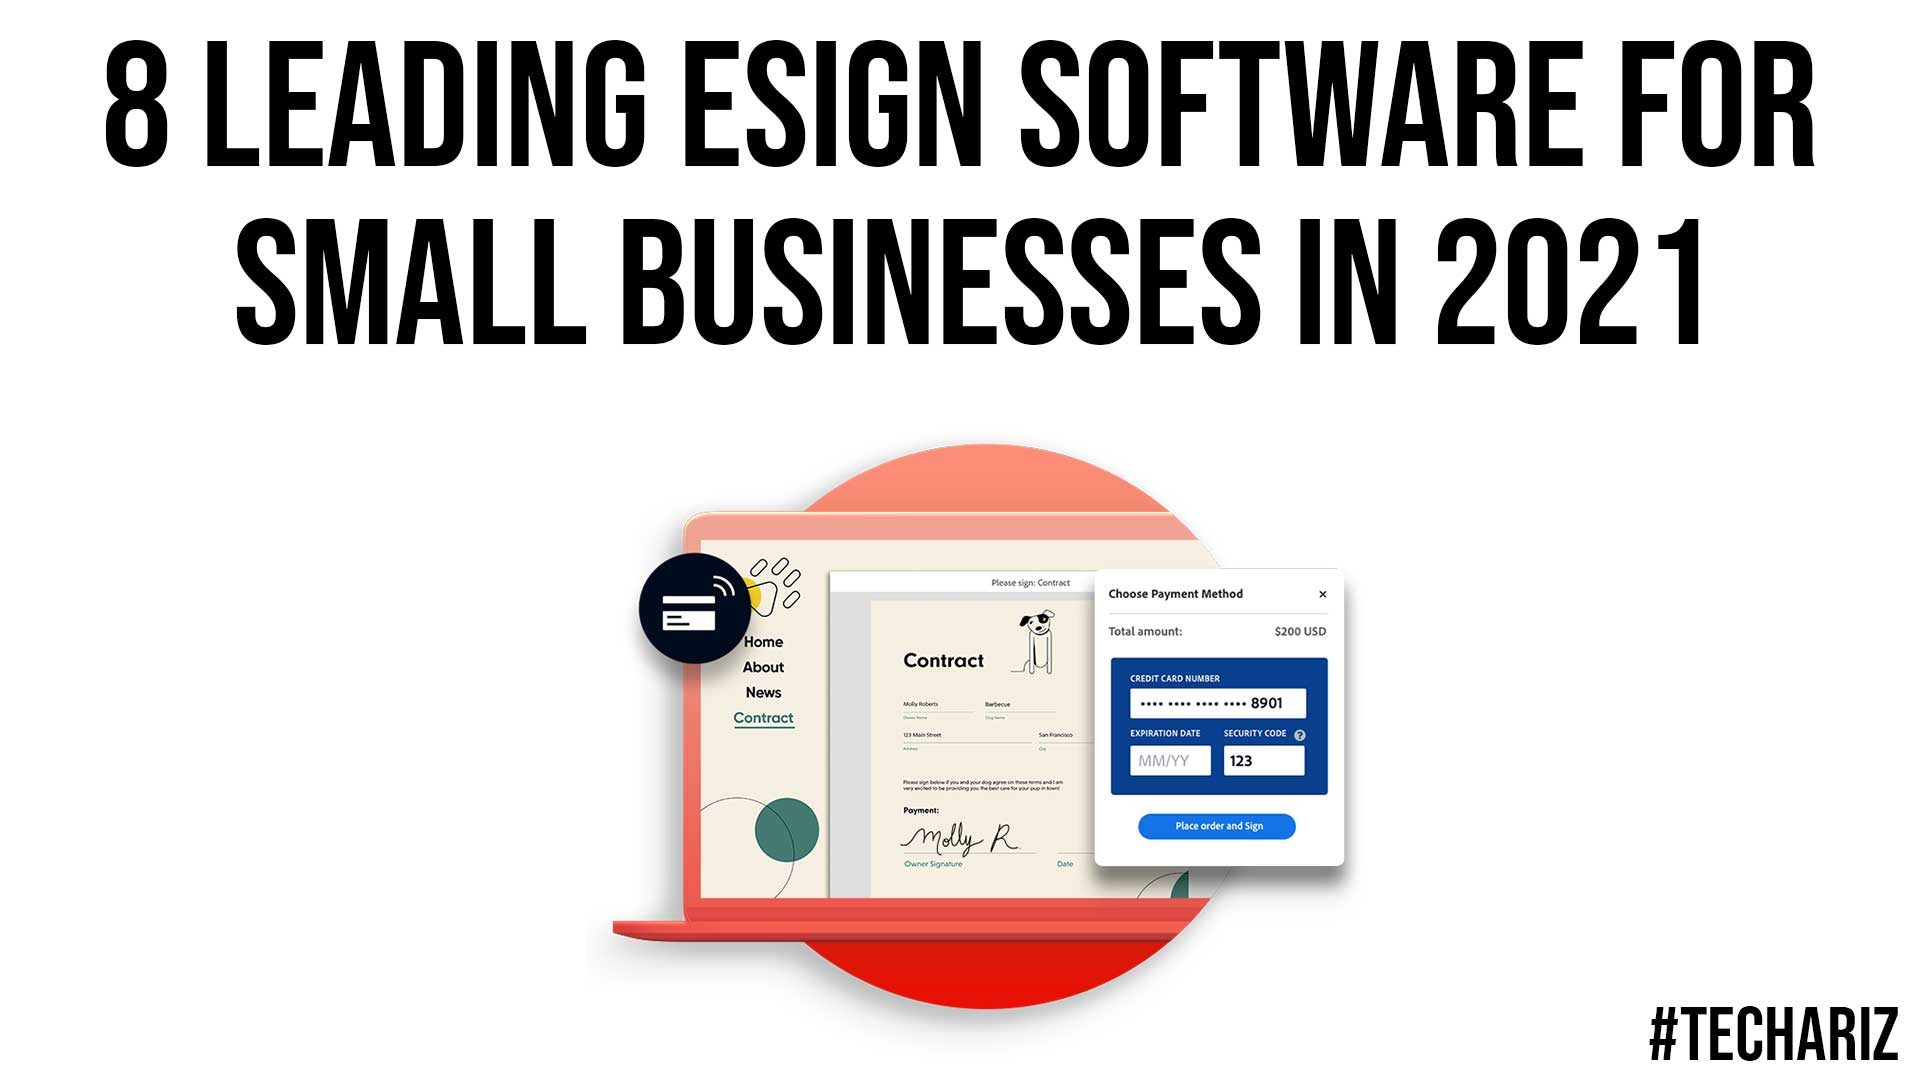 8 Leading eSign Software for Small Businesses in 2021